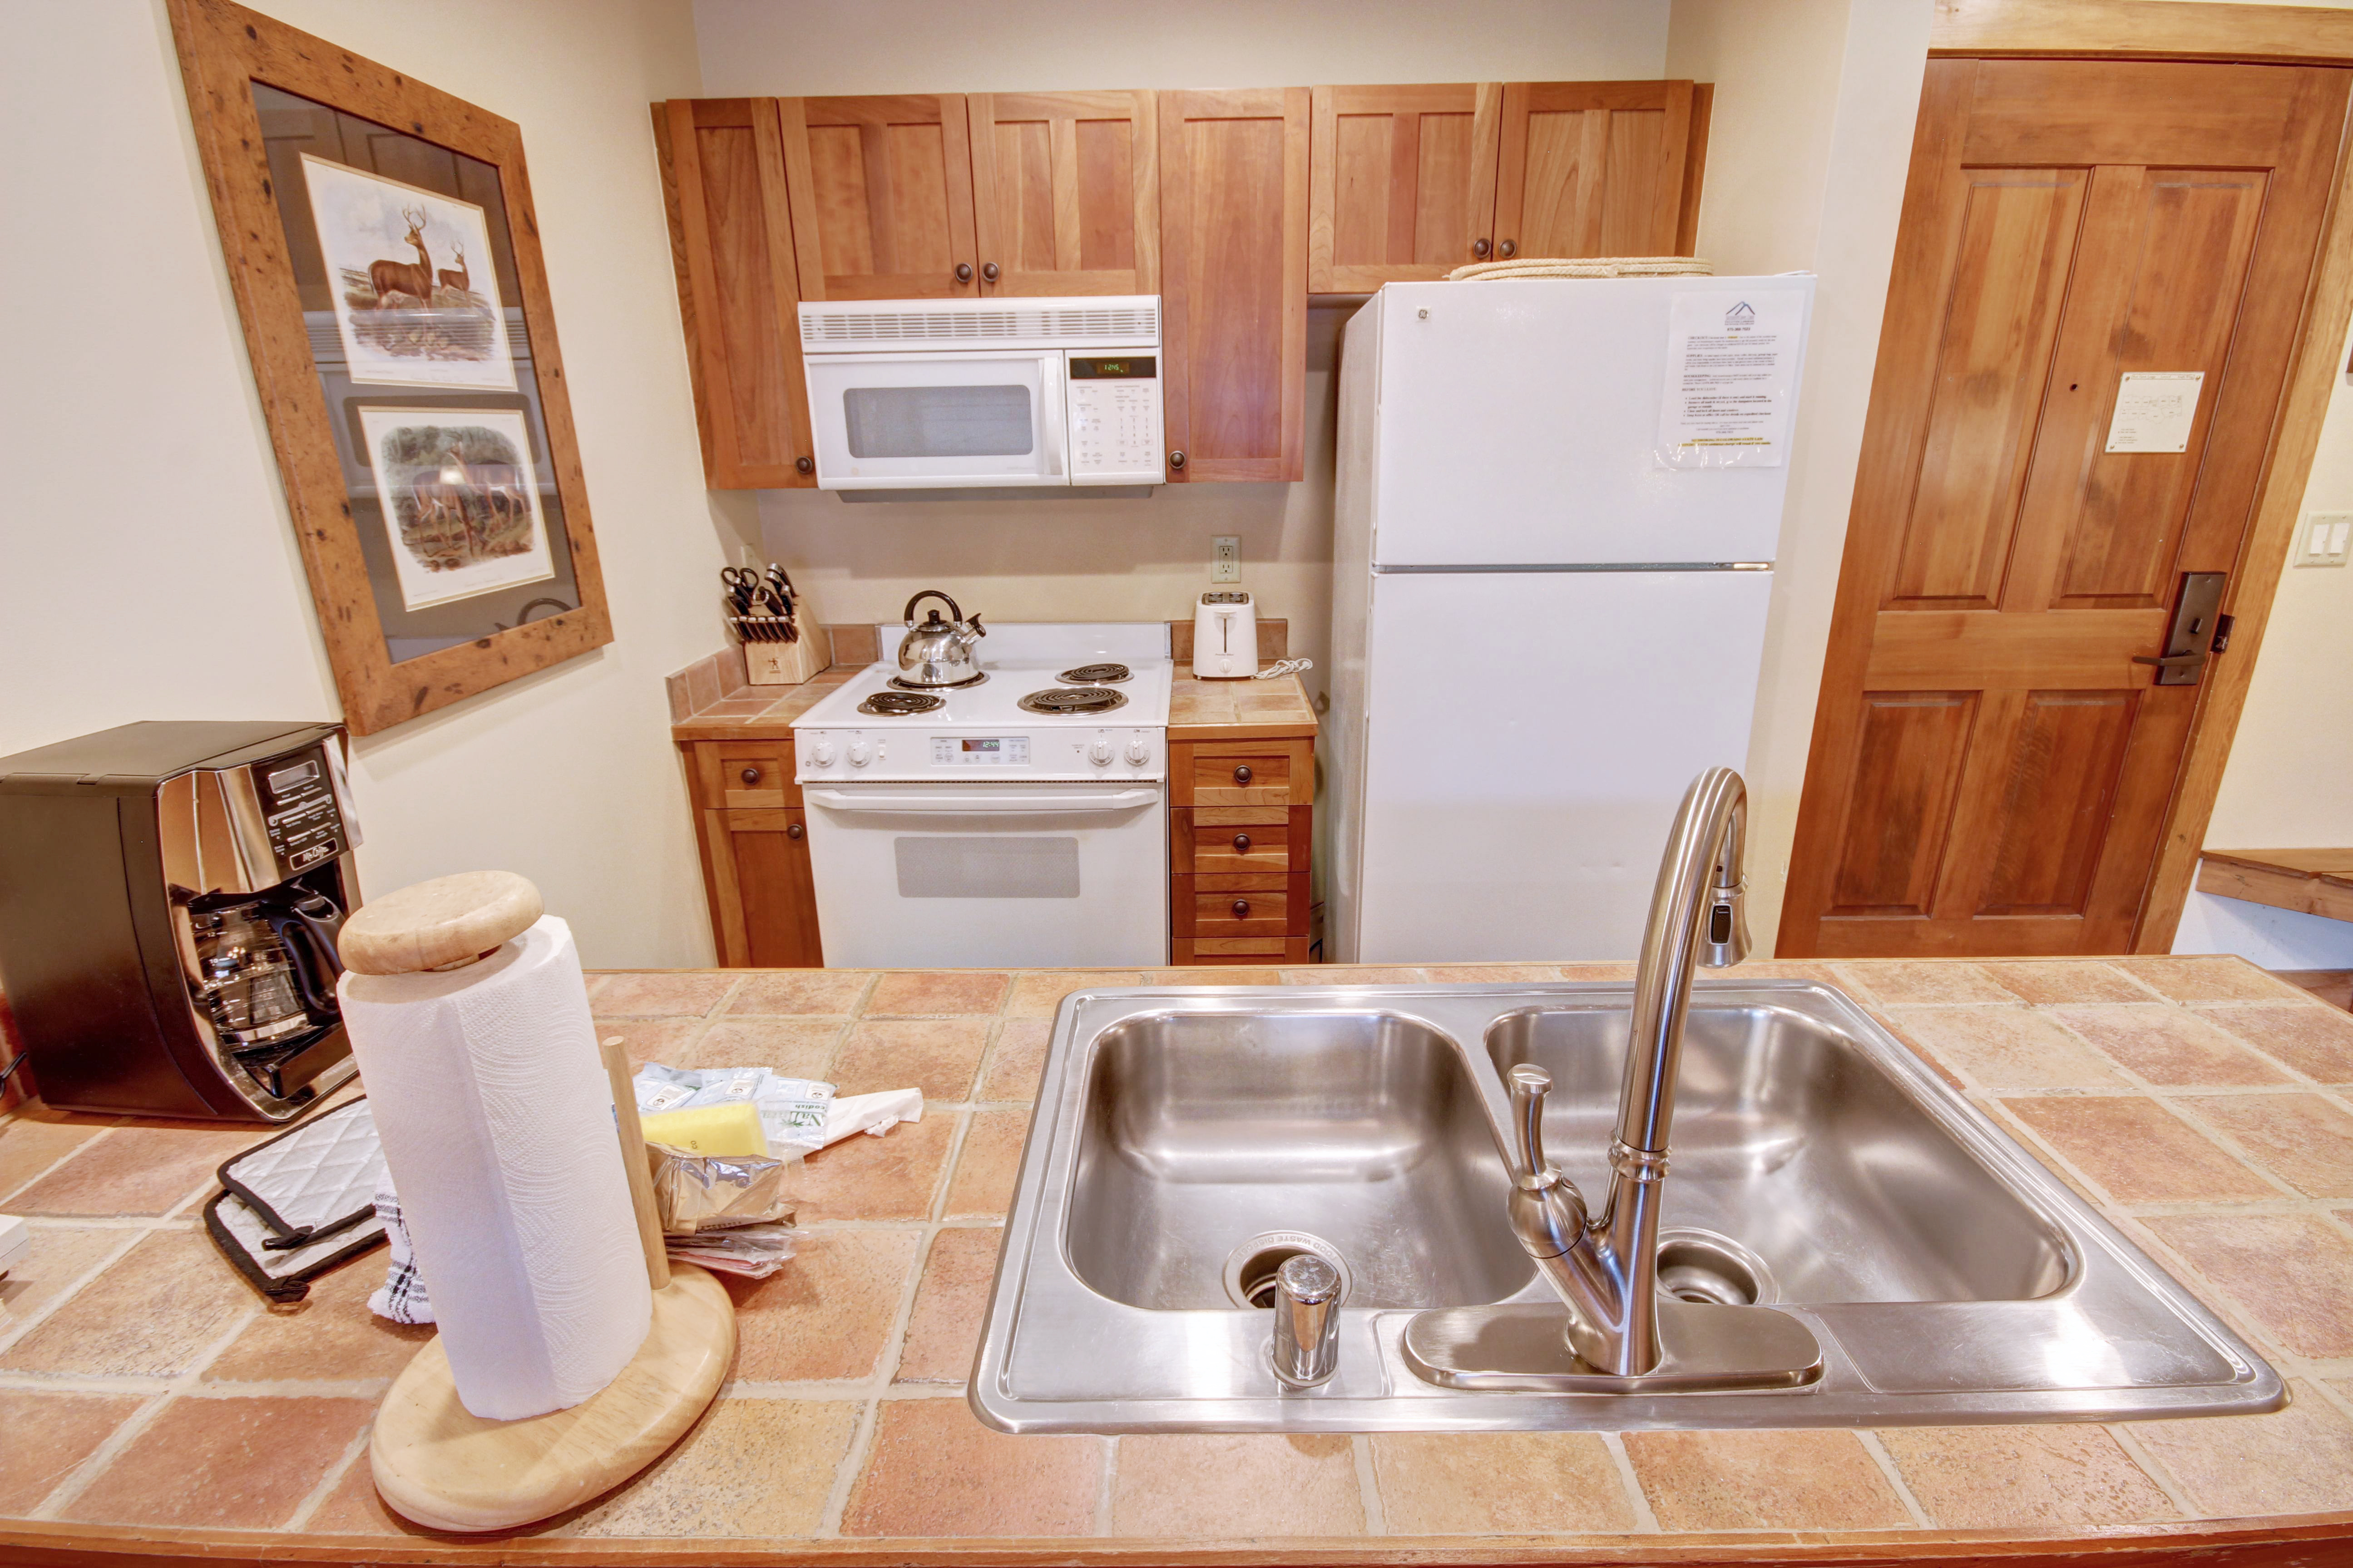 Kitchen with a stainless sinks